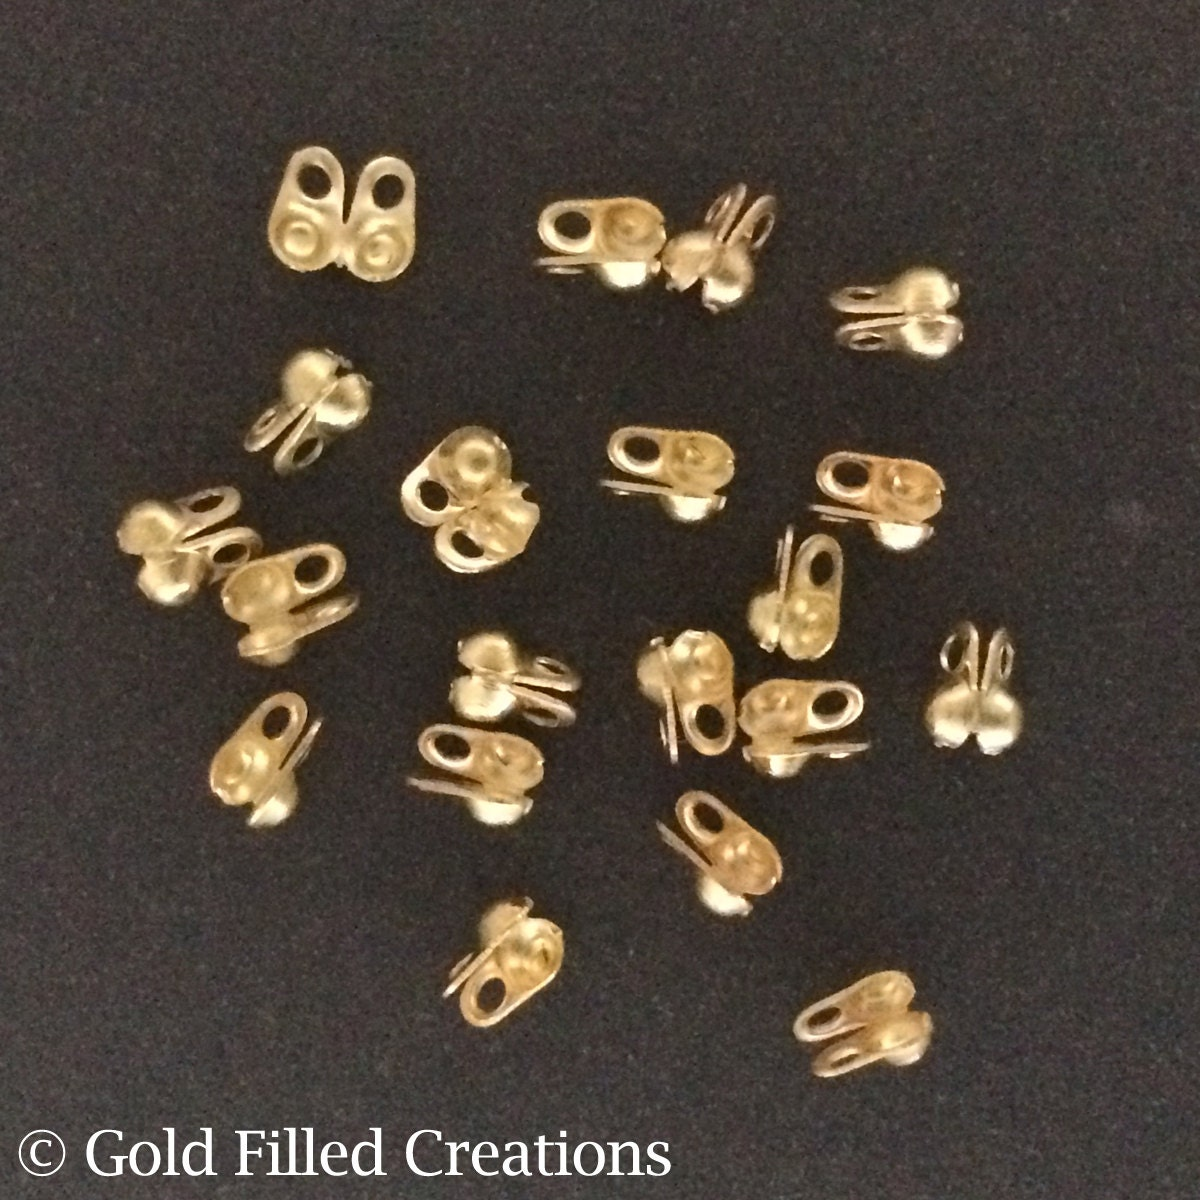 Gold filled creations